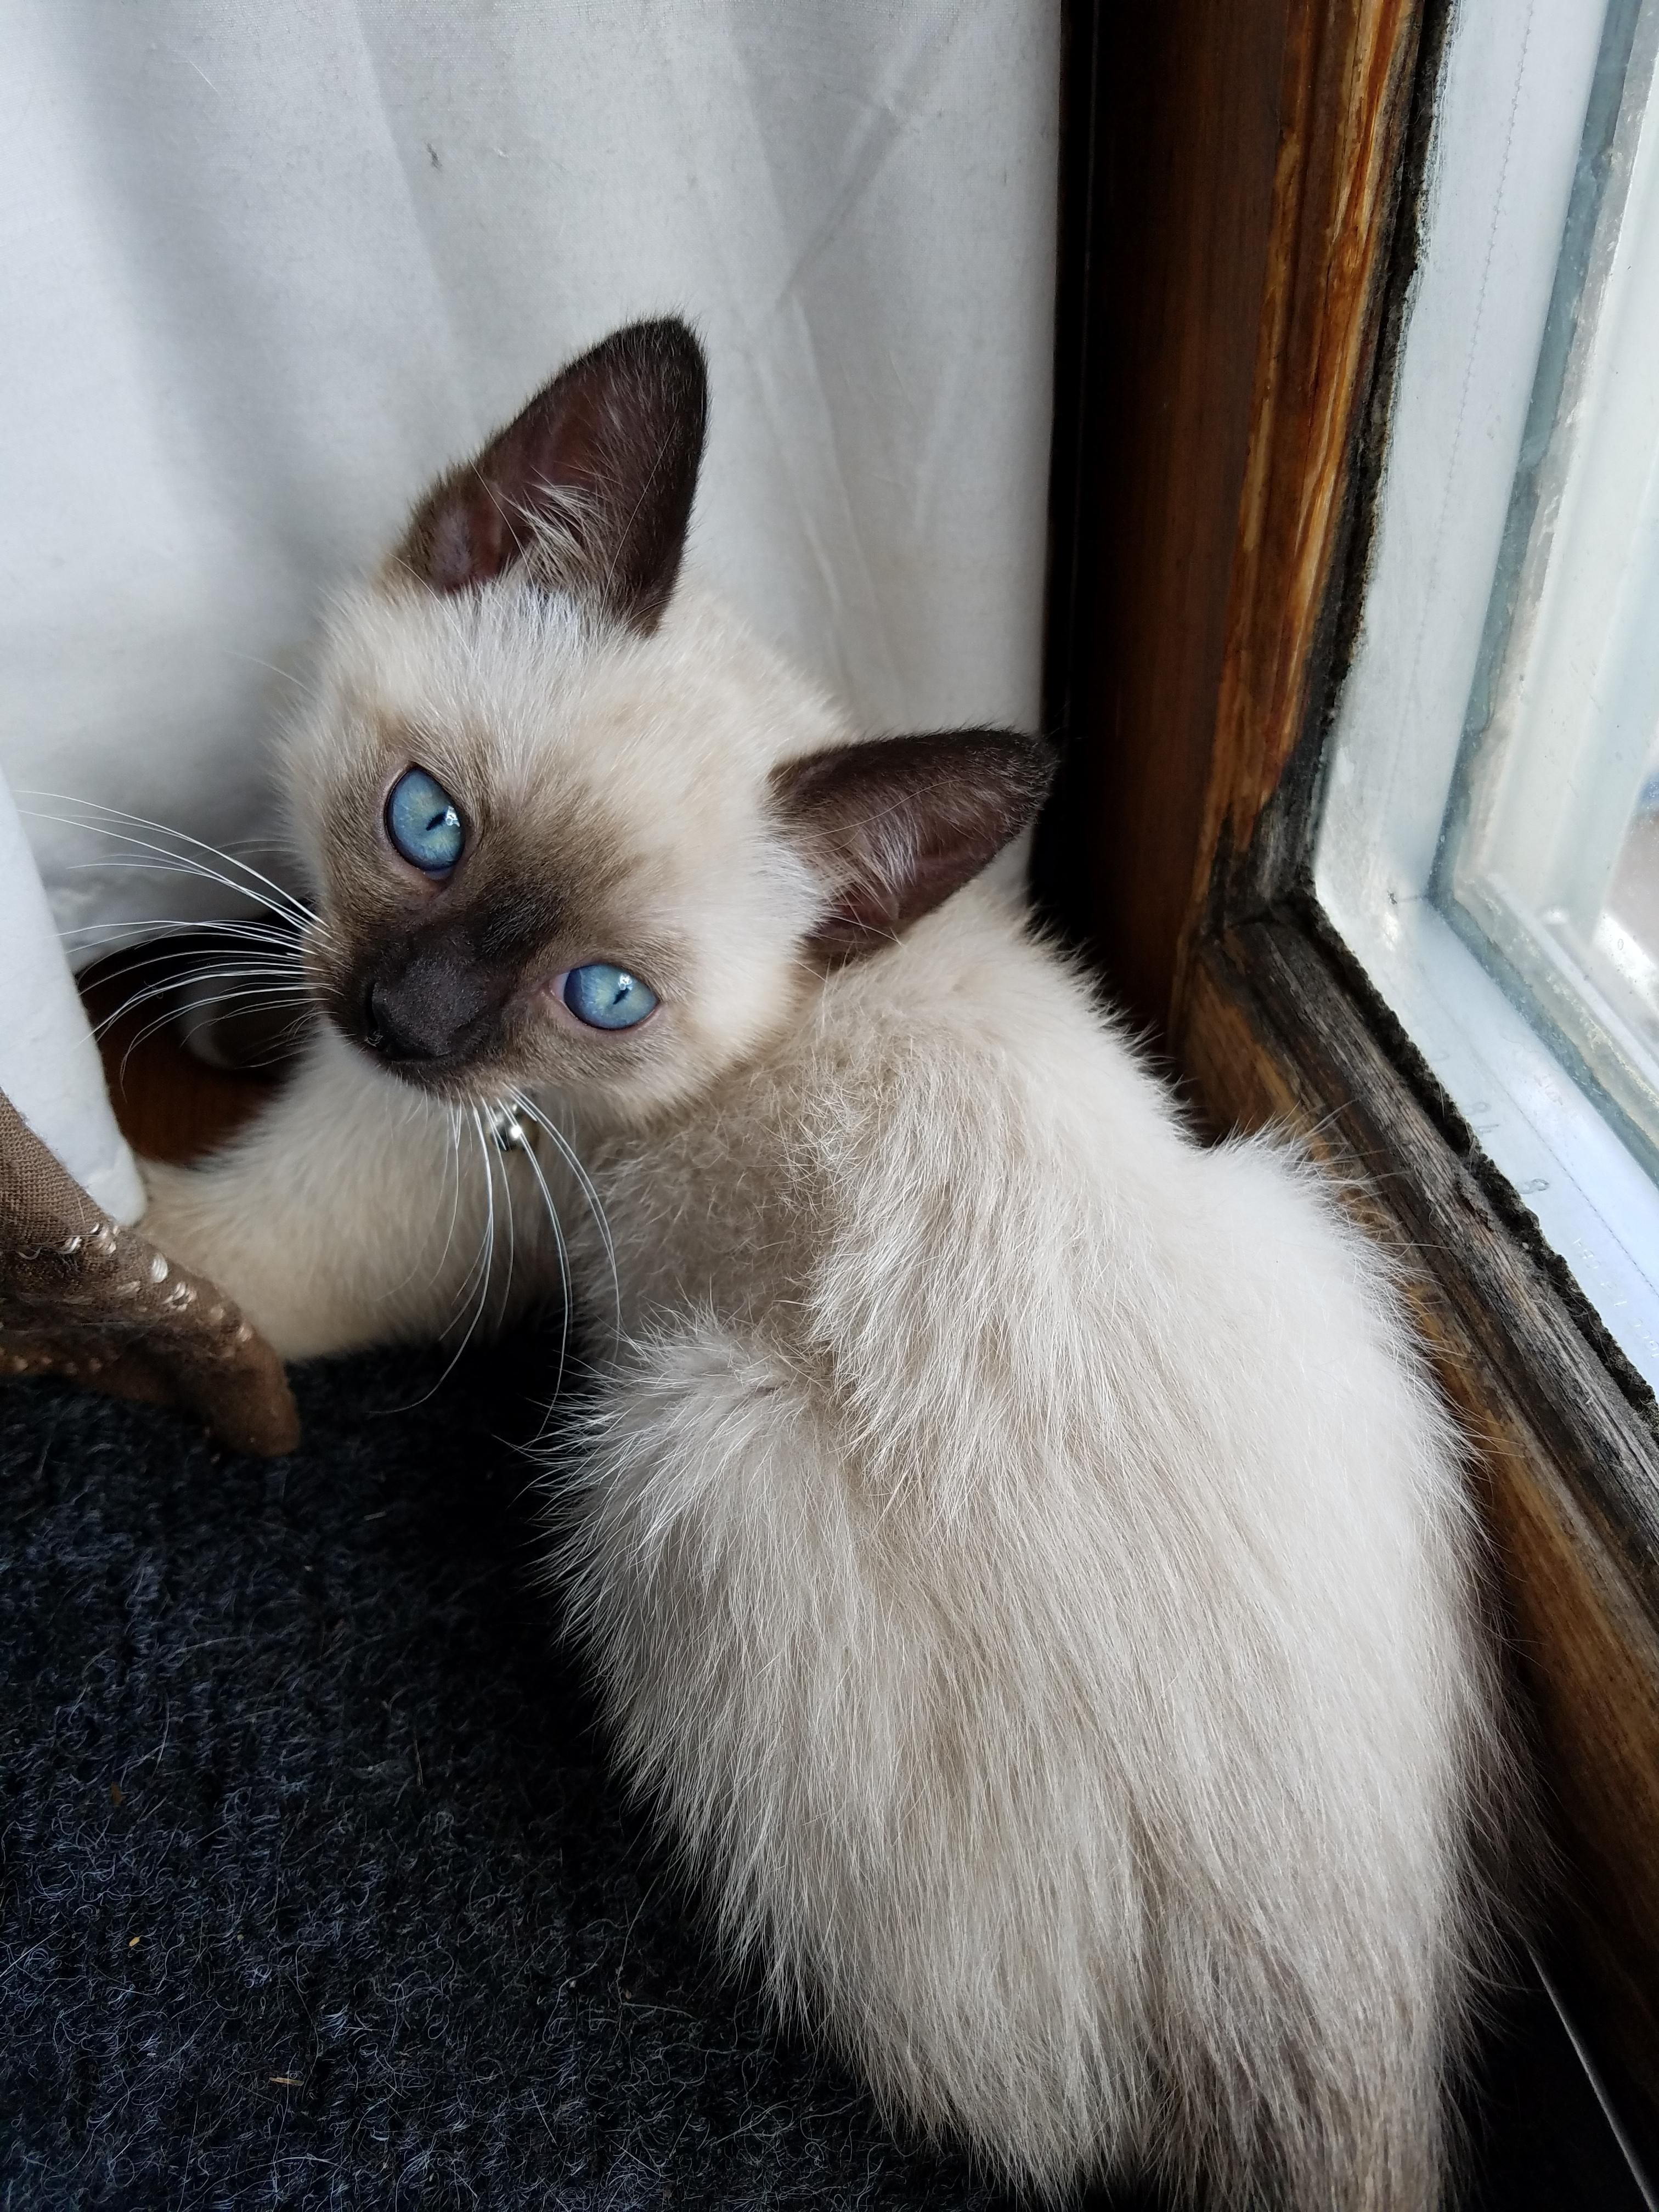 I recently adopted a snowshoe Siamese kitten. He's got